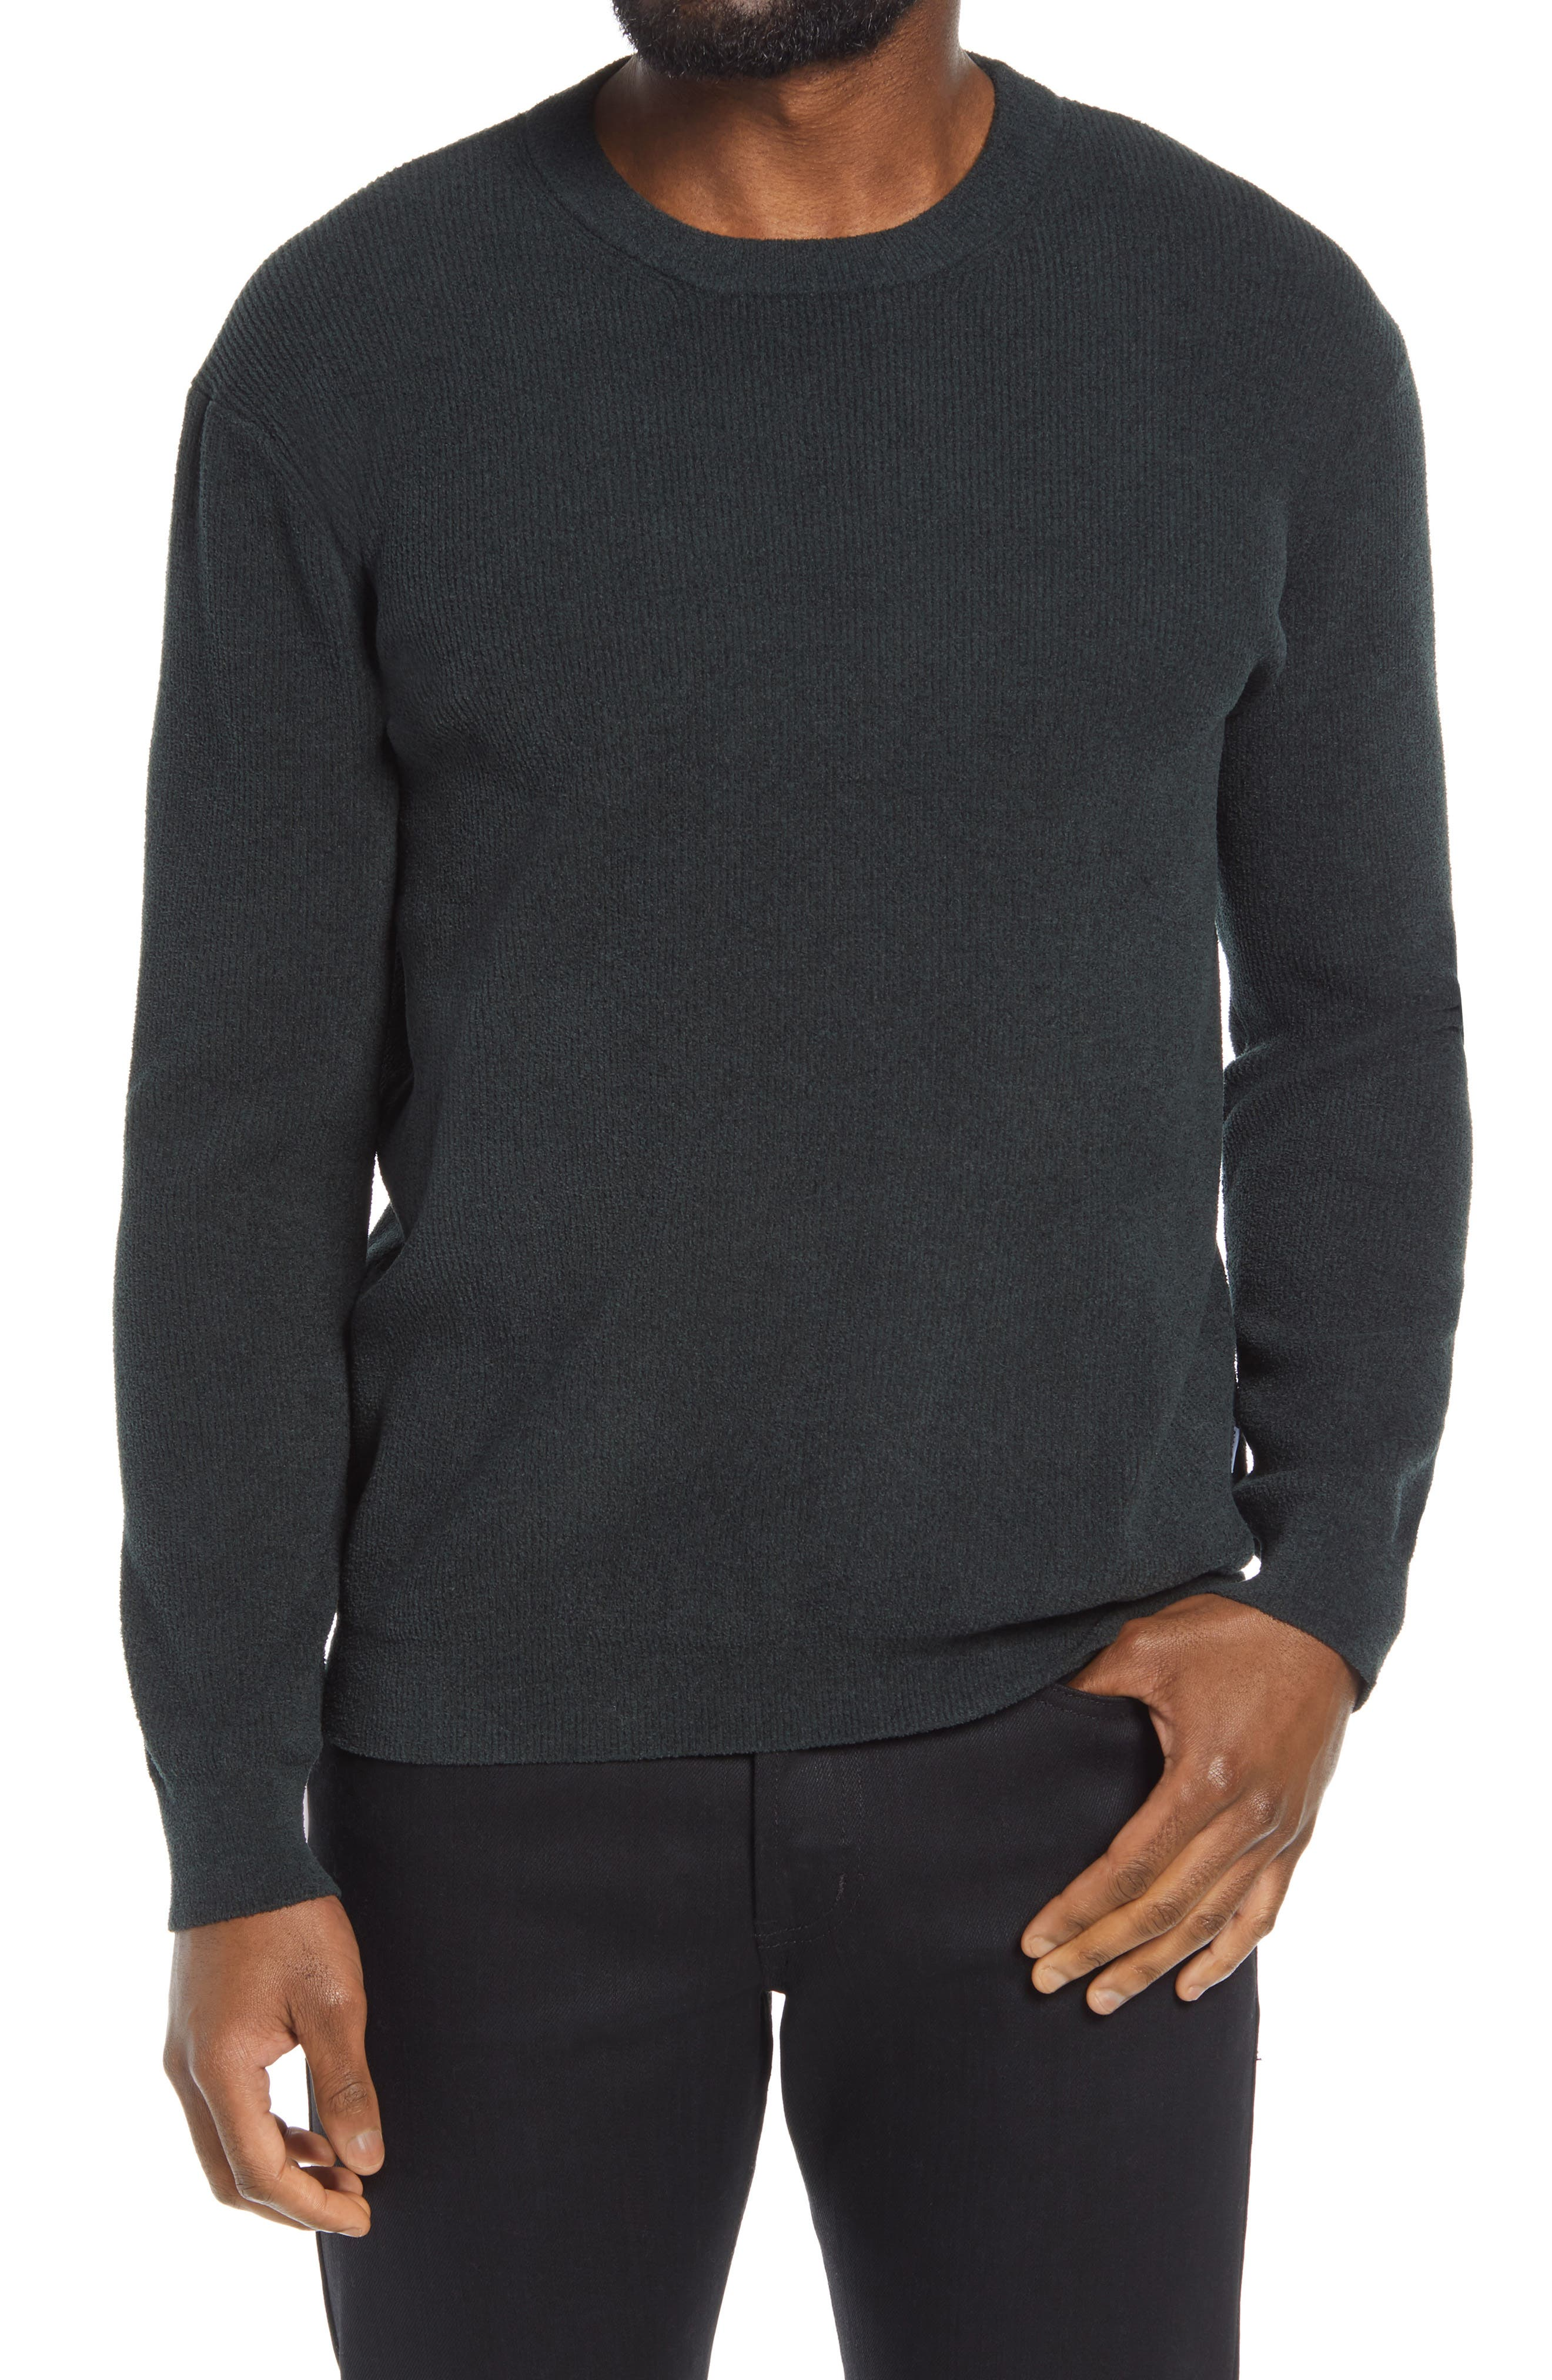 Soft, lightweight and easy to wear, this staple crewneck sweater makes a great layer over or under any cold-weather look. Style Name: Nn07 Men\\\'S Danny 6429 Crewneck Sweater. Style Number: 6119210. Available in stores.